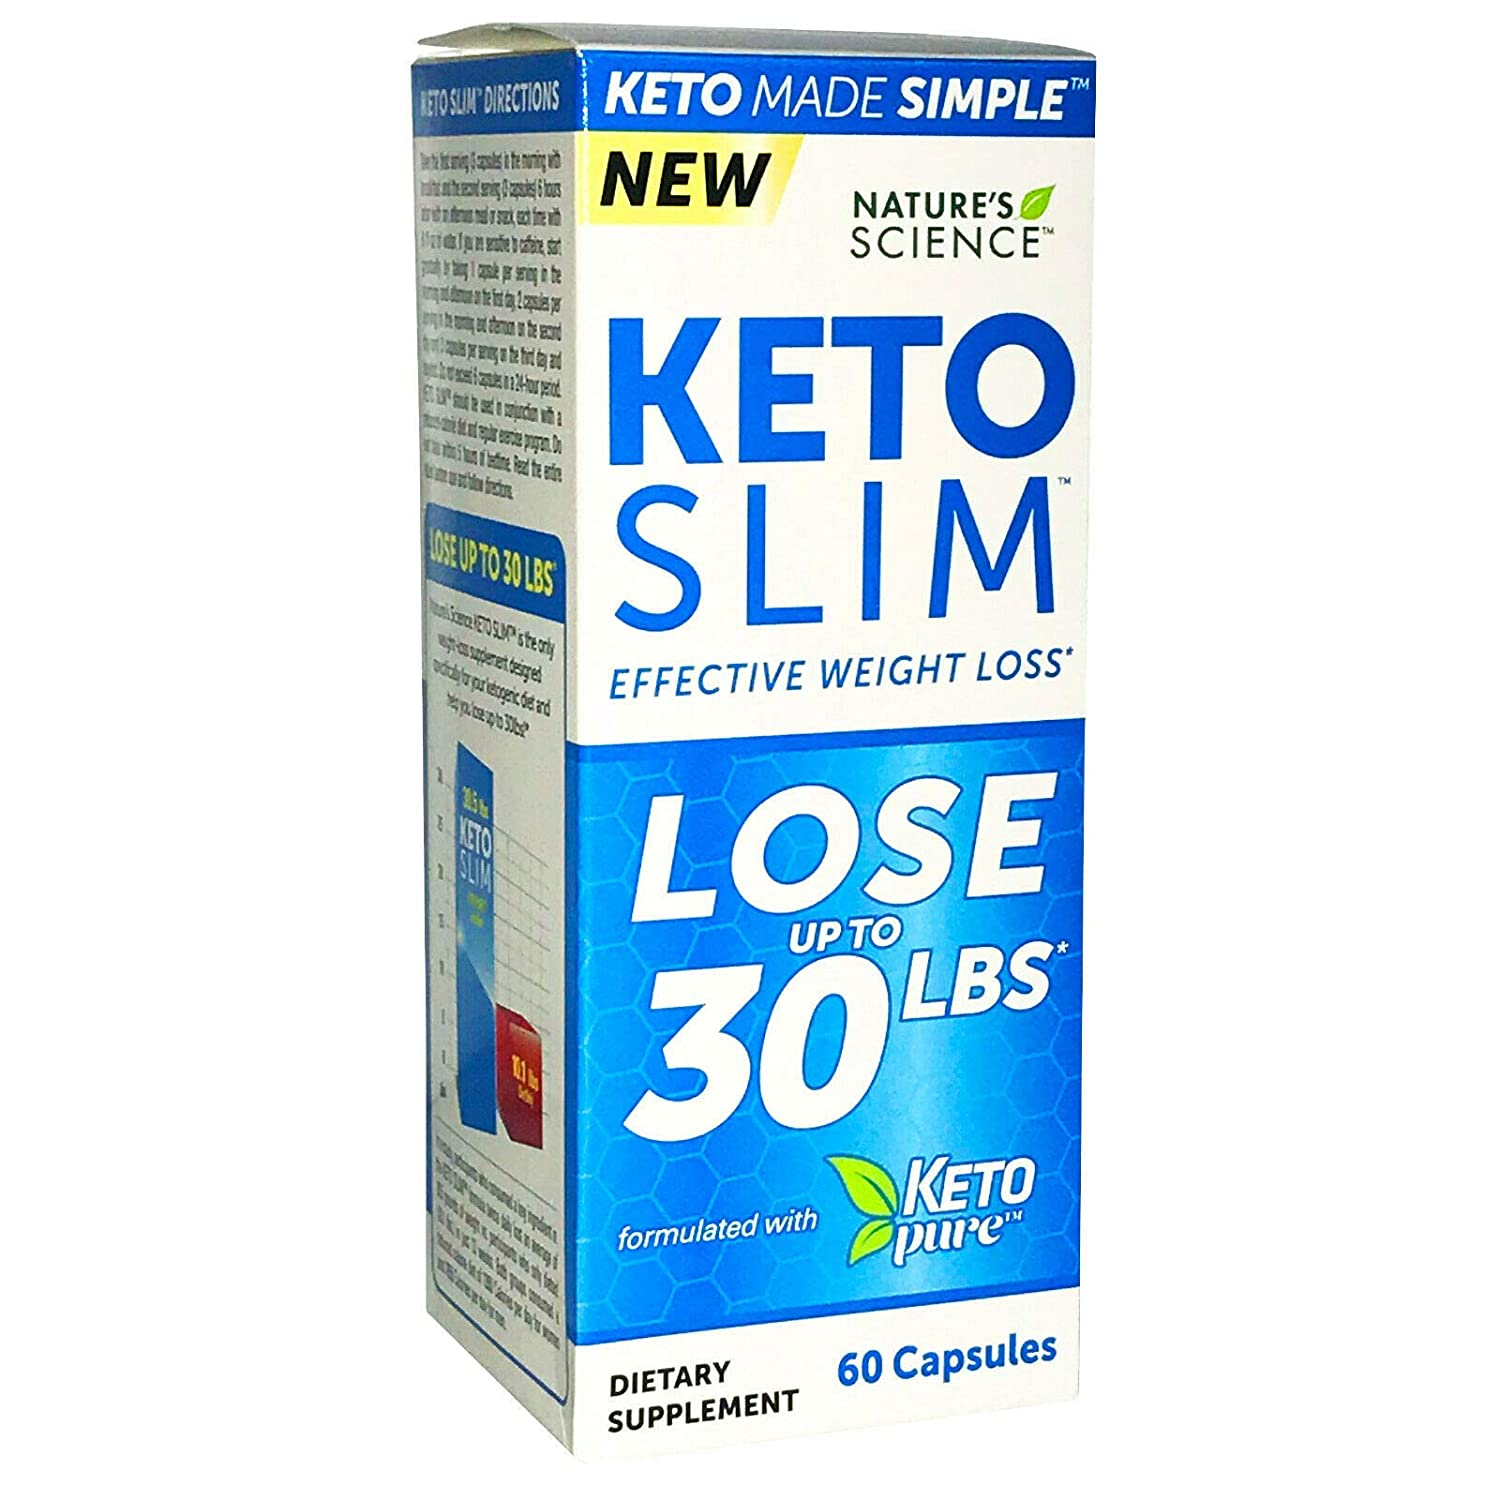 keto slim diet reviews